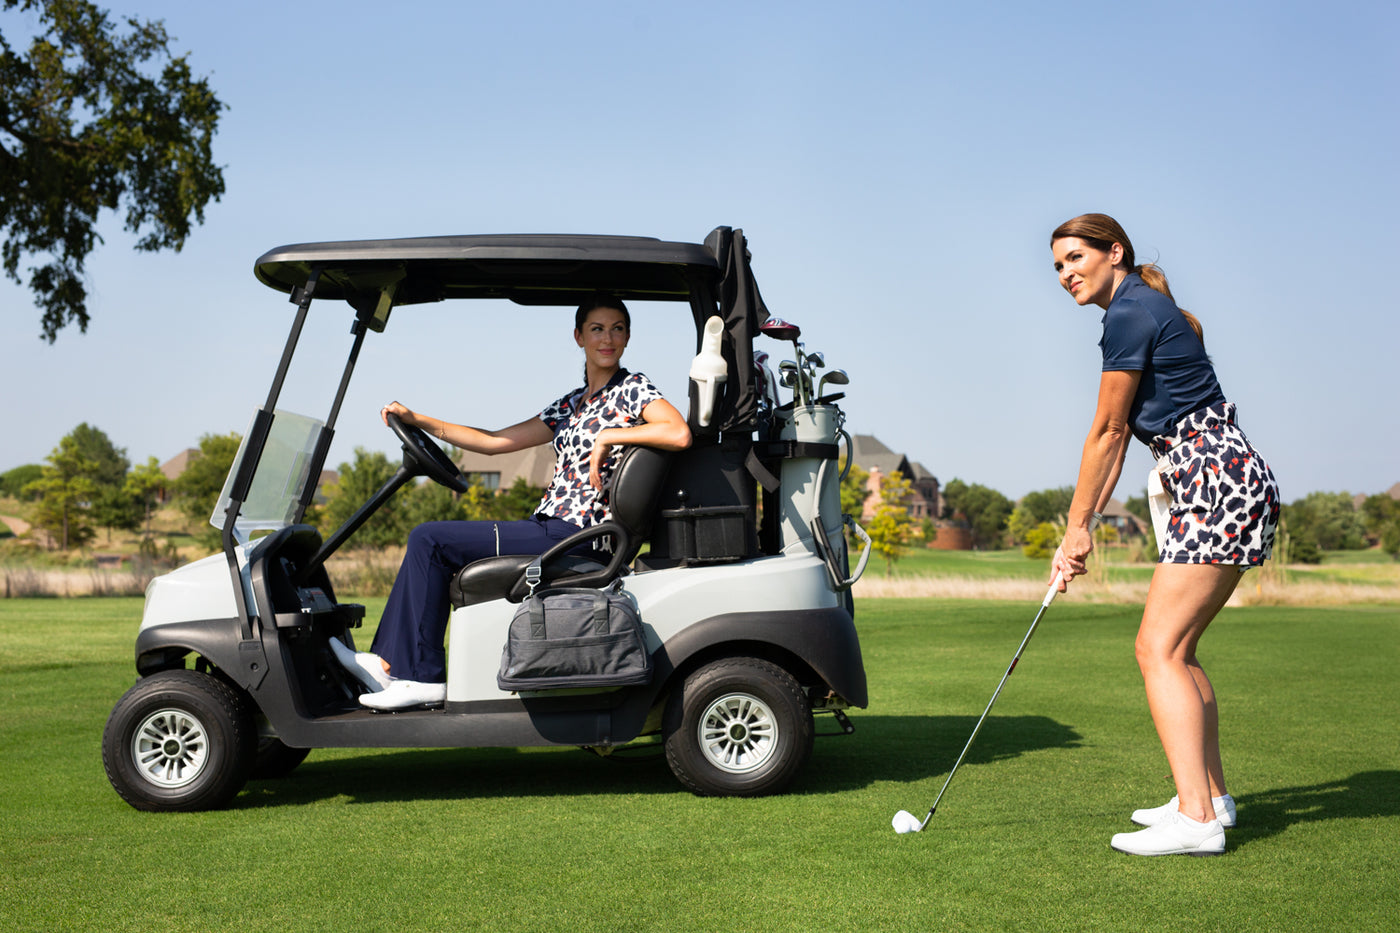 Two females on golf course, one in cart and the other hitting a golf ball